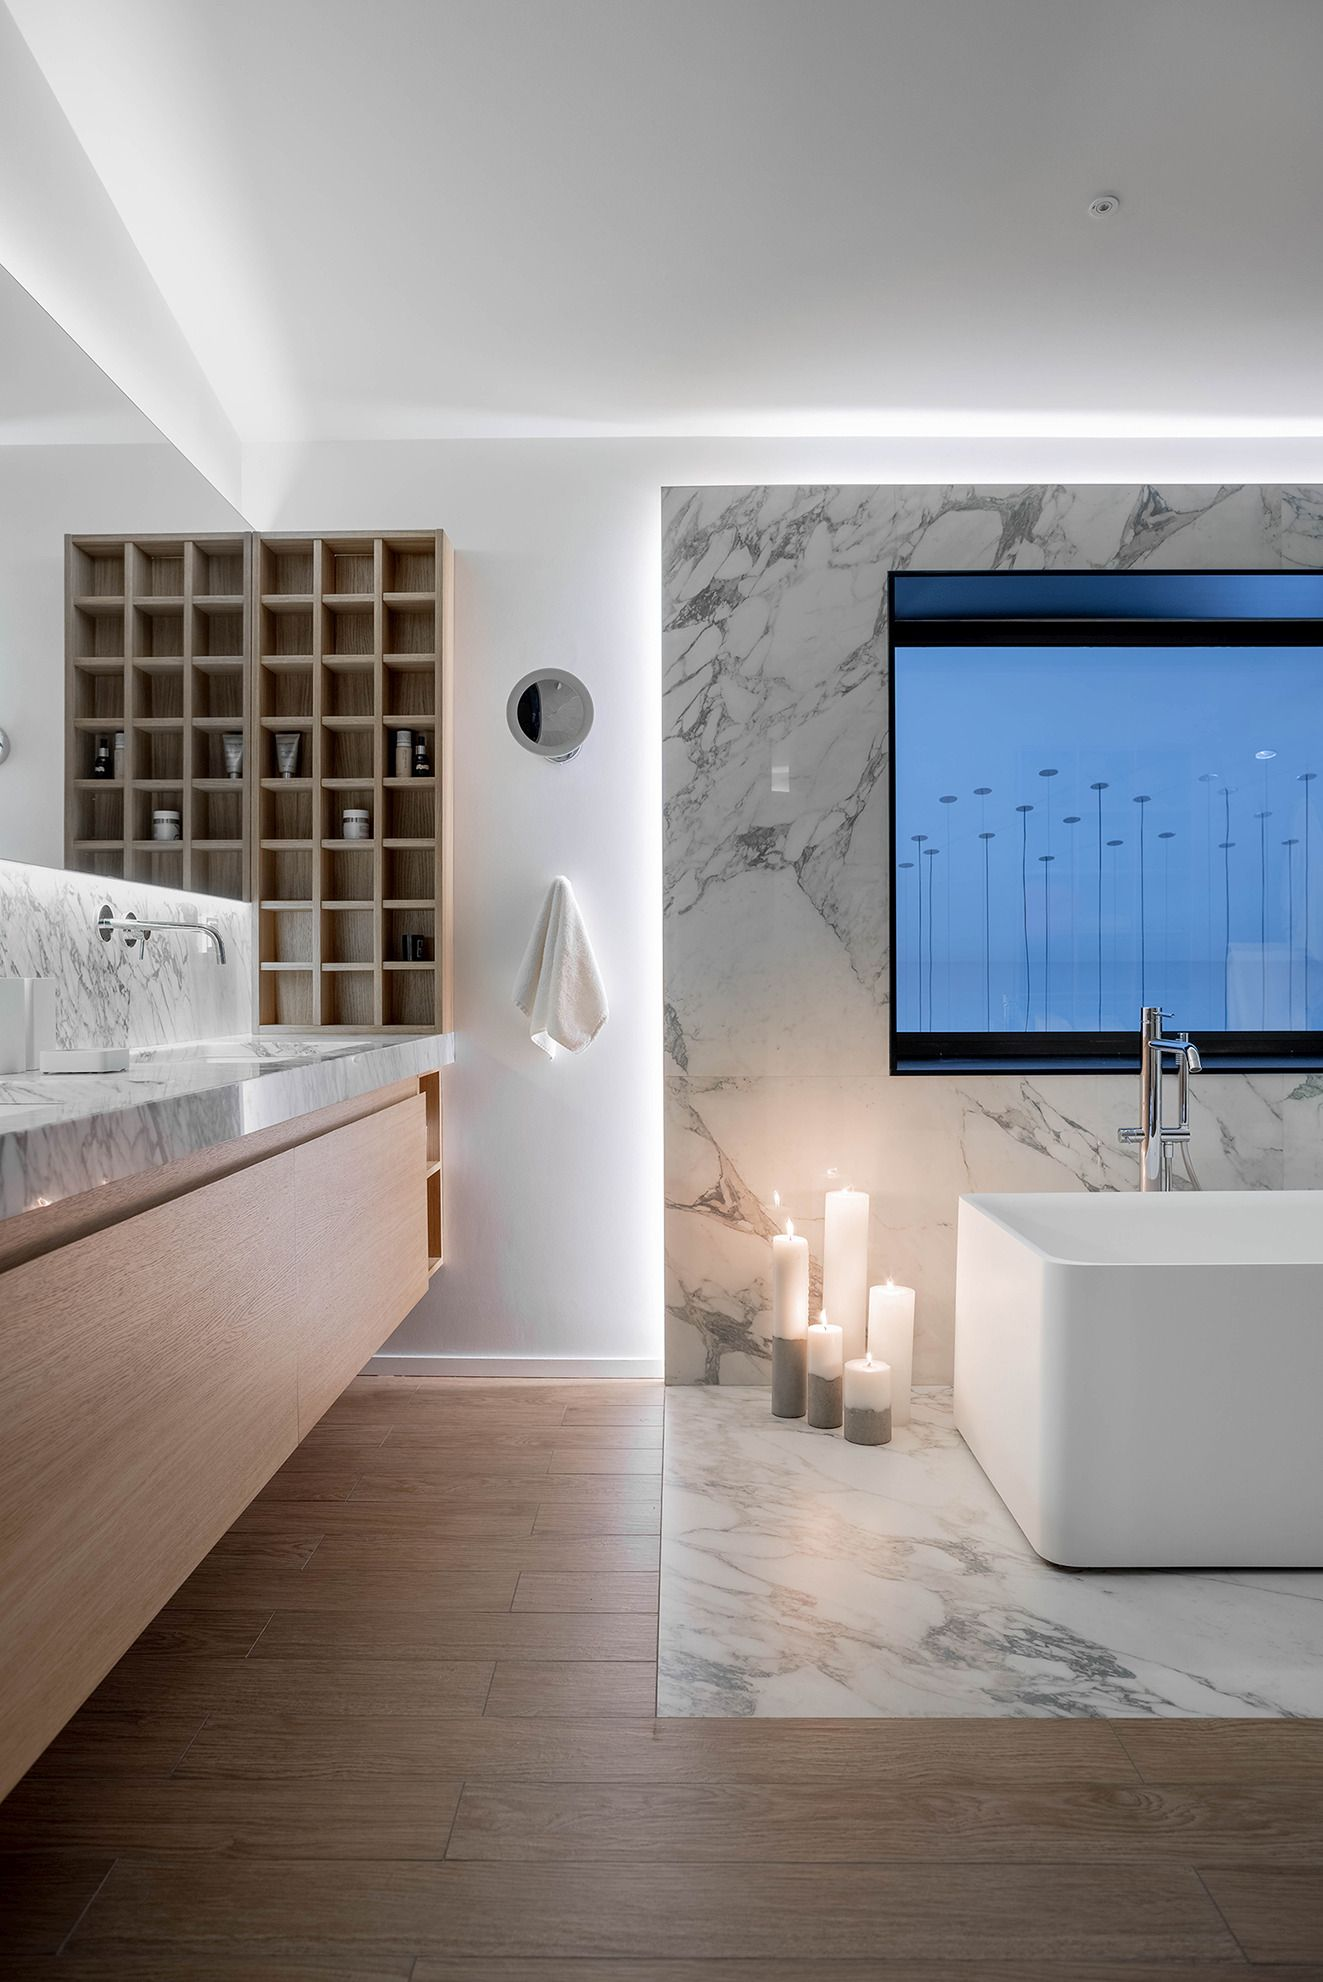 The master bathroom features very soothing accent lighting